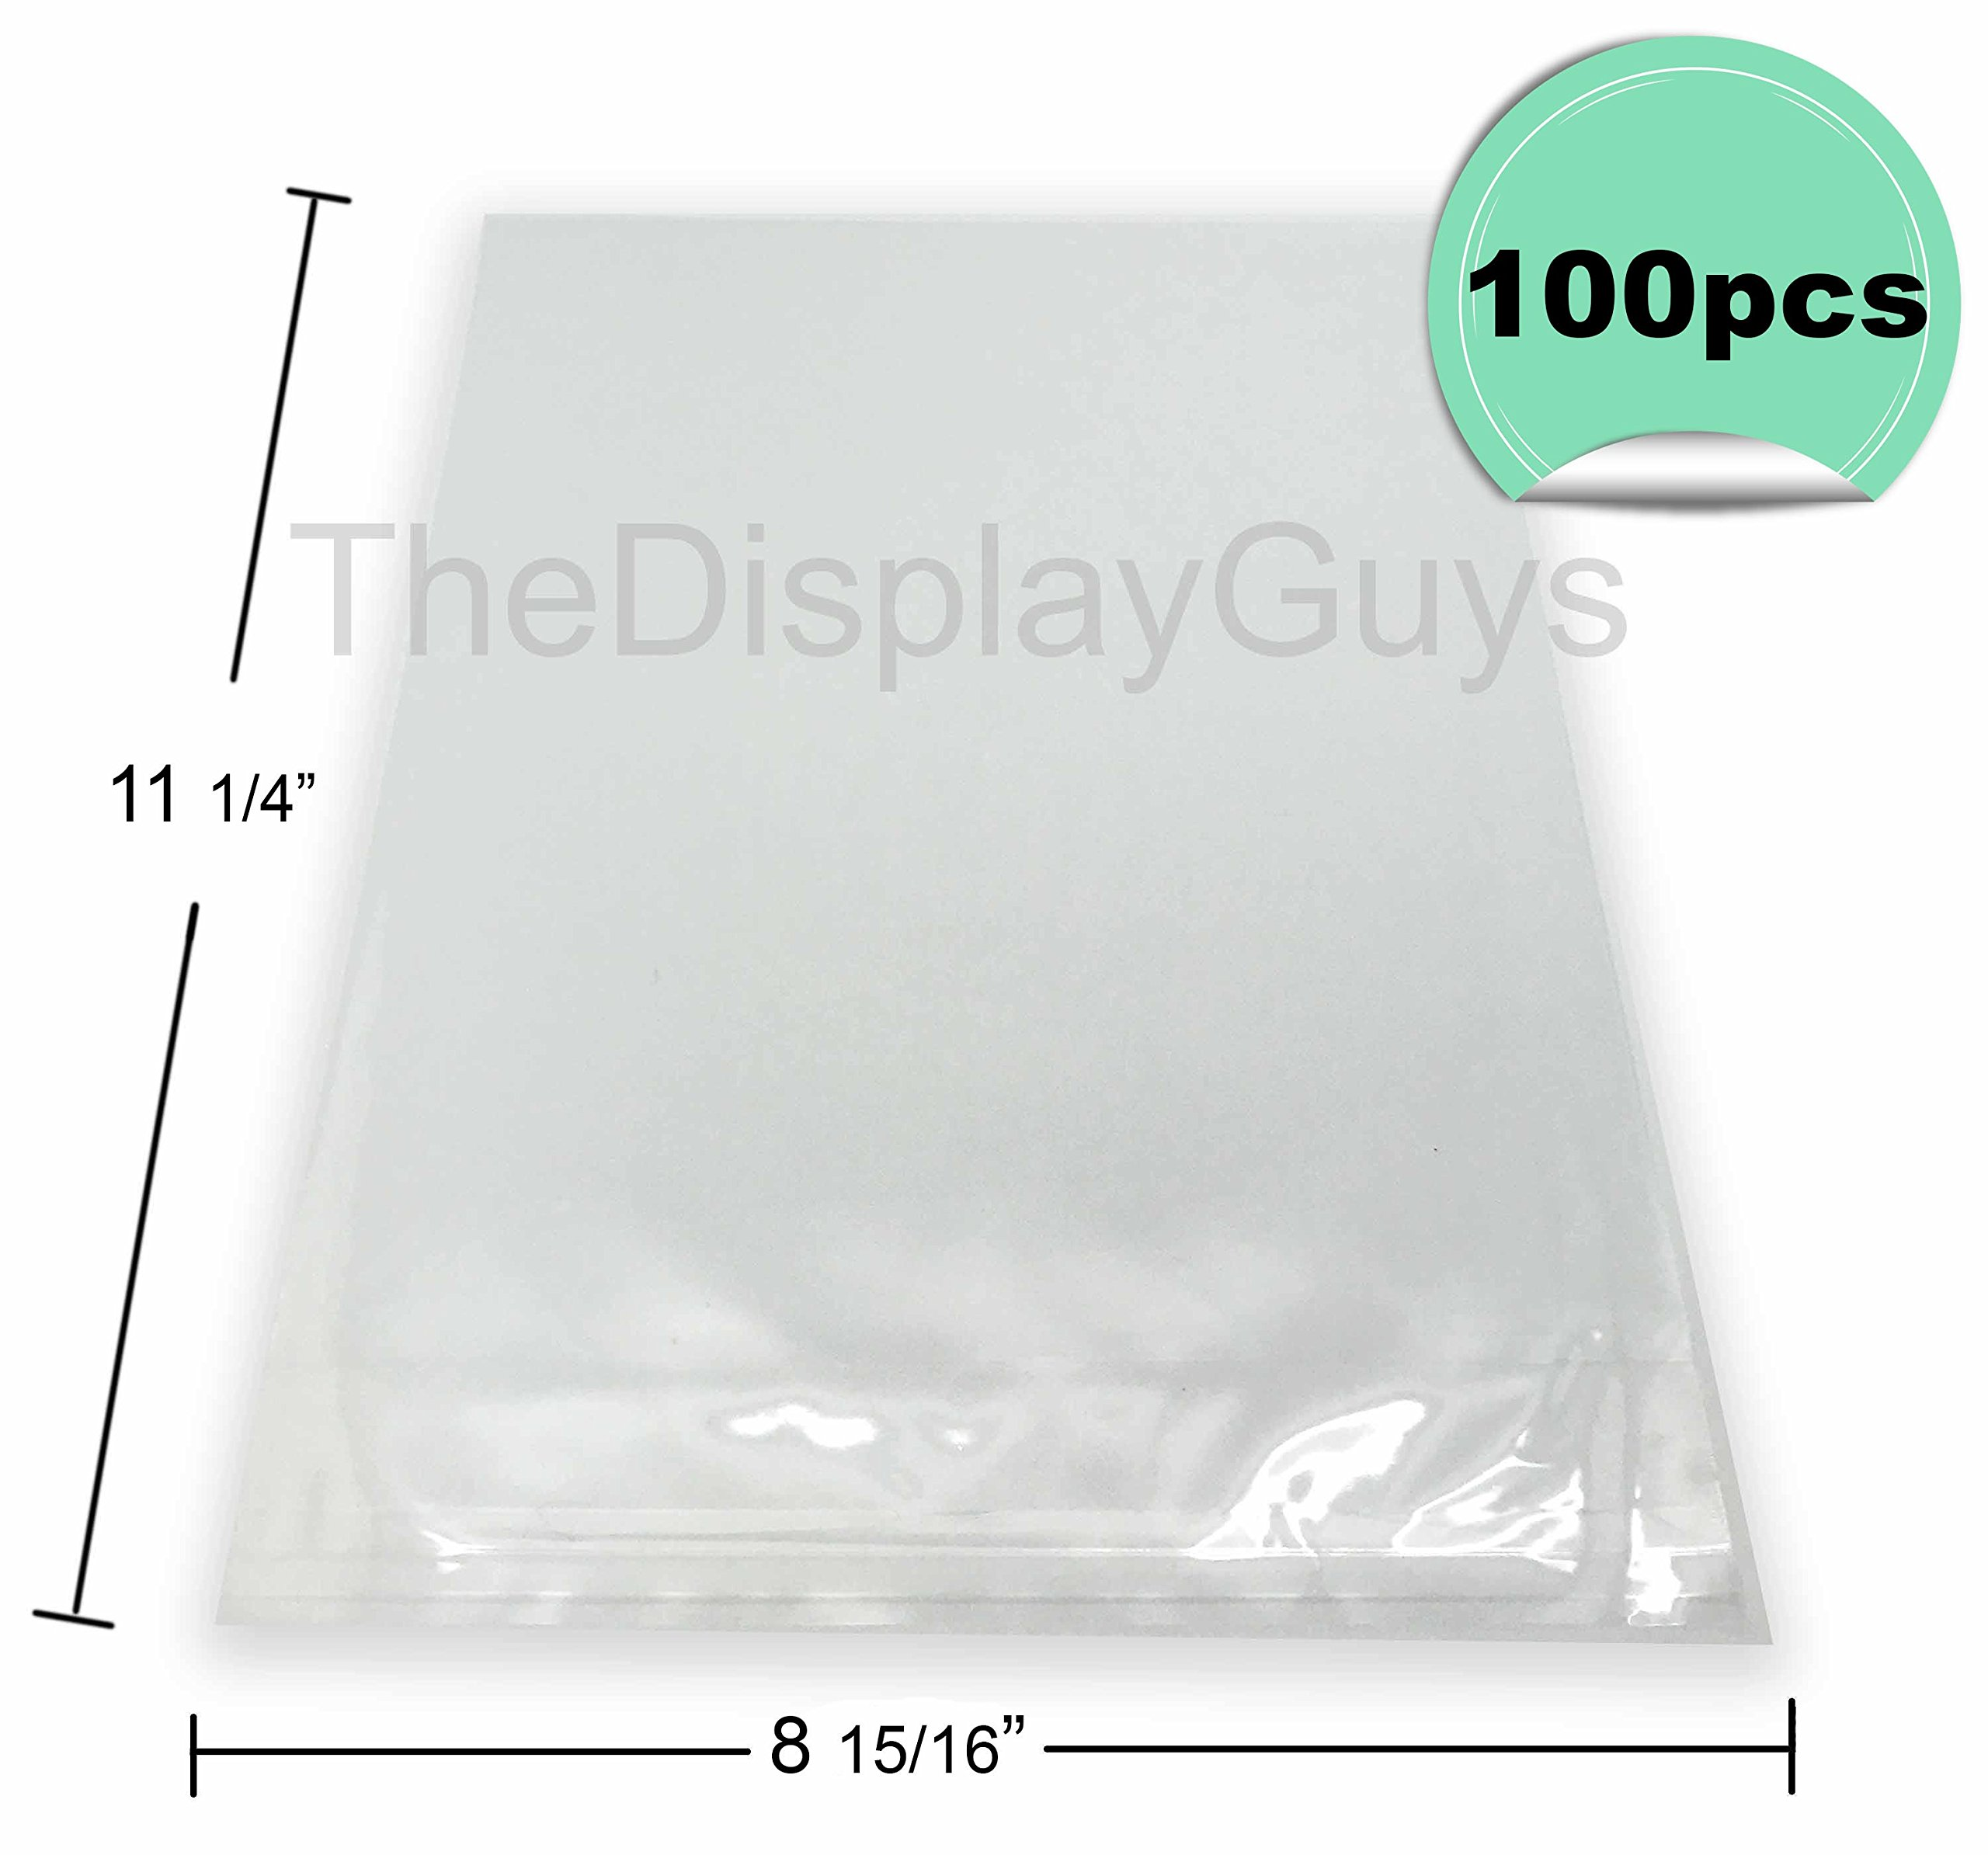 The Display Guys, 100 Pcs 8 15/16'' x 11 1/4'' Clear Self Adhesive Plastic Bags for 8 1/2 x 11 inches Picture Photo Framing Mats Certificates Diplomas